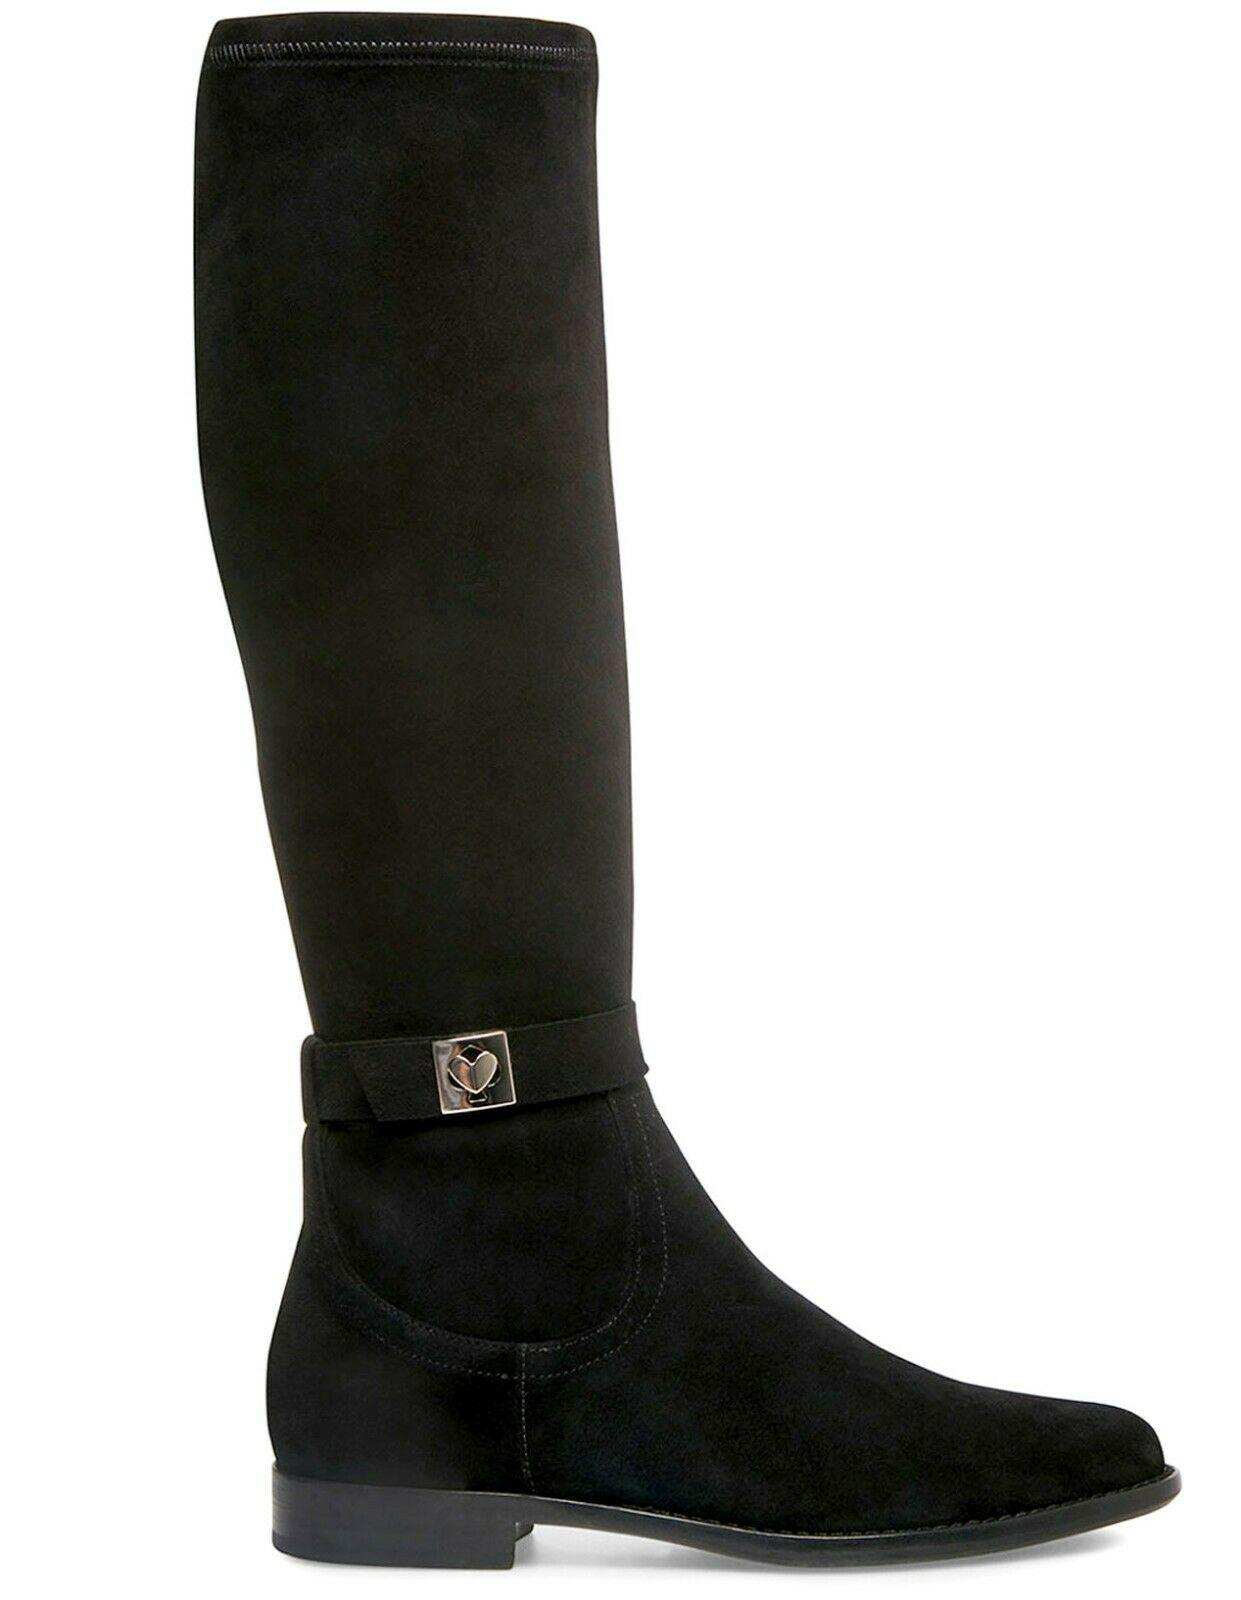 Kate Spade Verona Stretch Suede Knee Boots Flat Black Booties 9